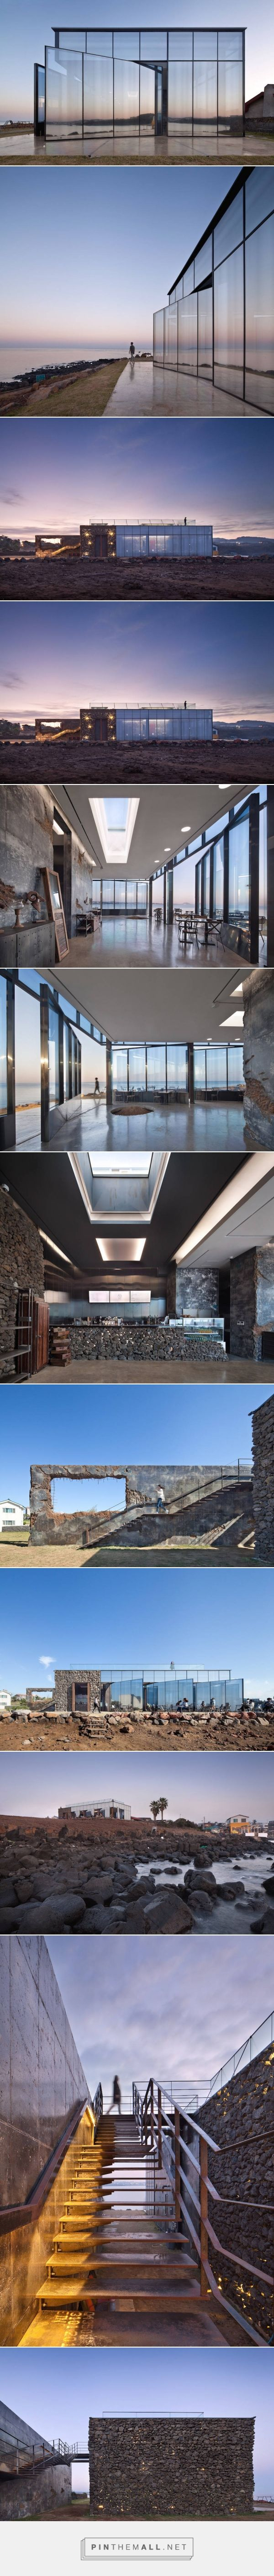 Cafe with Mirrored Facade & Pivoting Door in a Volcanic Island – Fubiz Media created